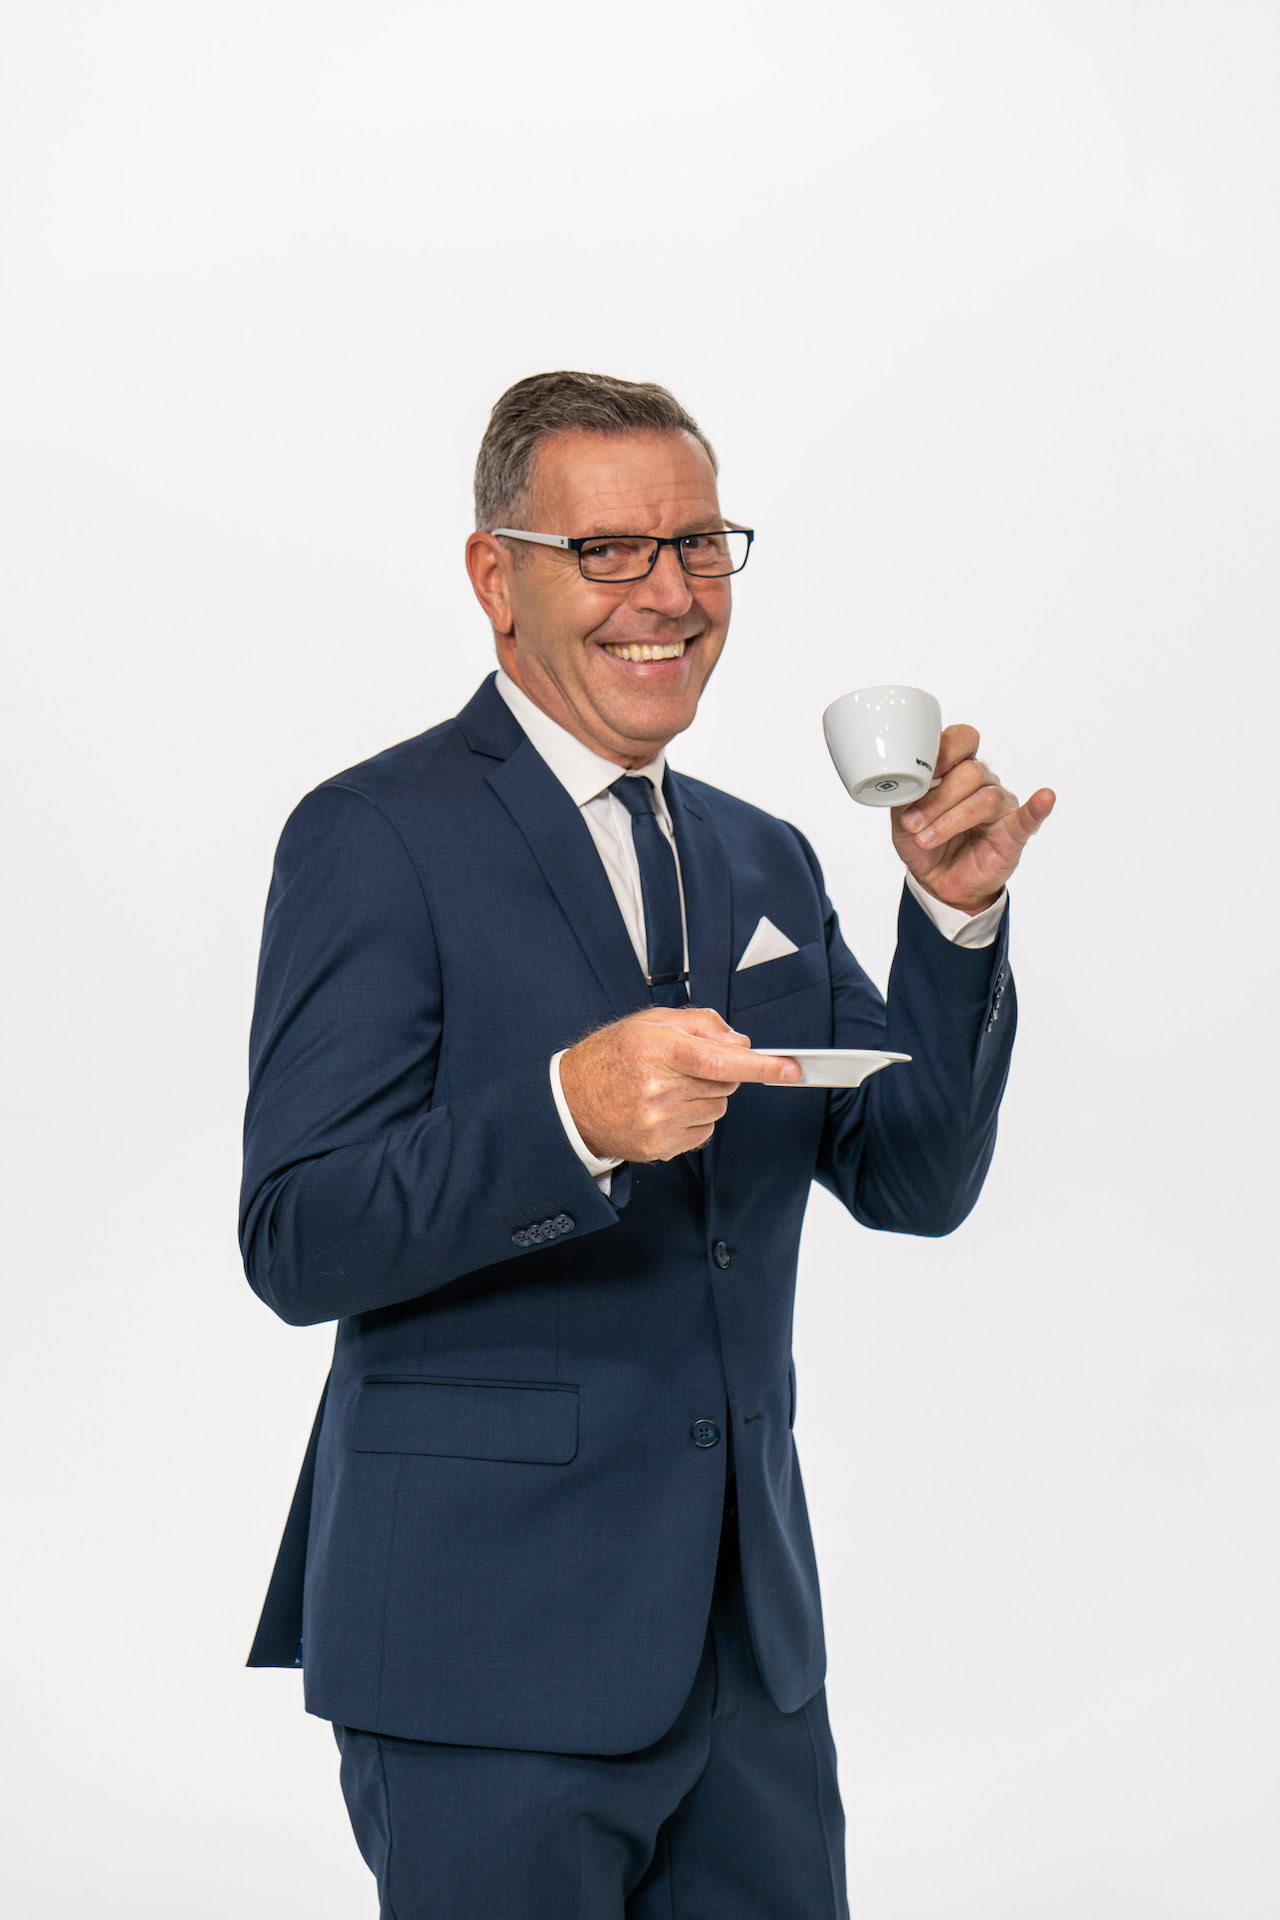 Mark Pickett in Blue Suit with tea cup